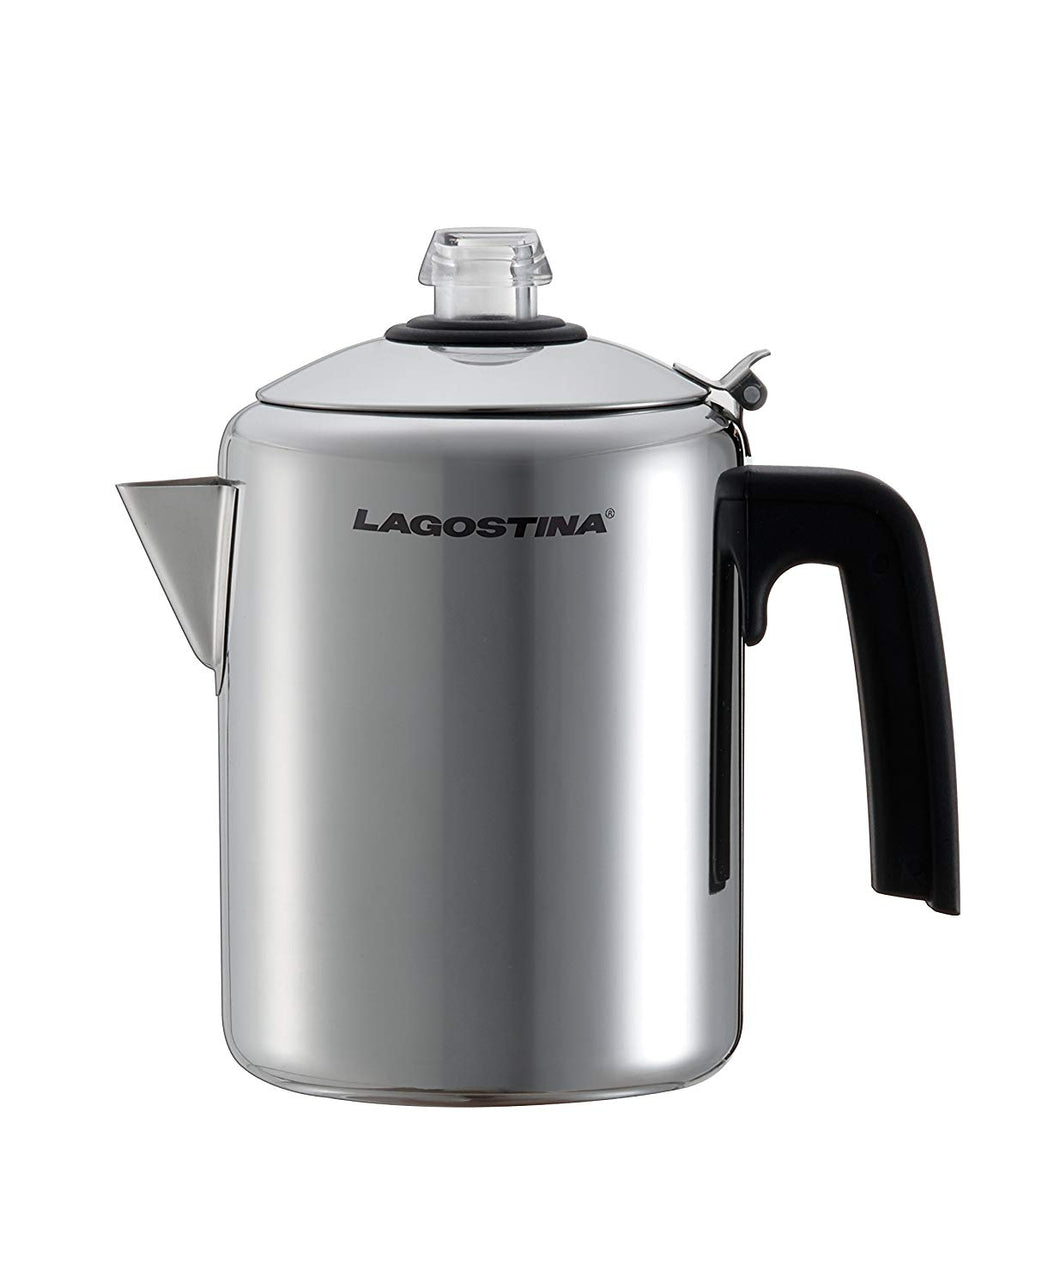 Lagostina Stainless Steel Coffee Percolator - 8 cup